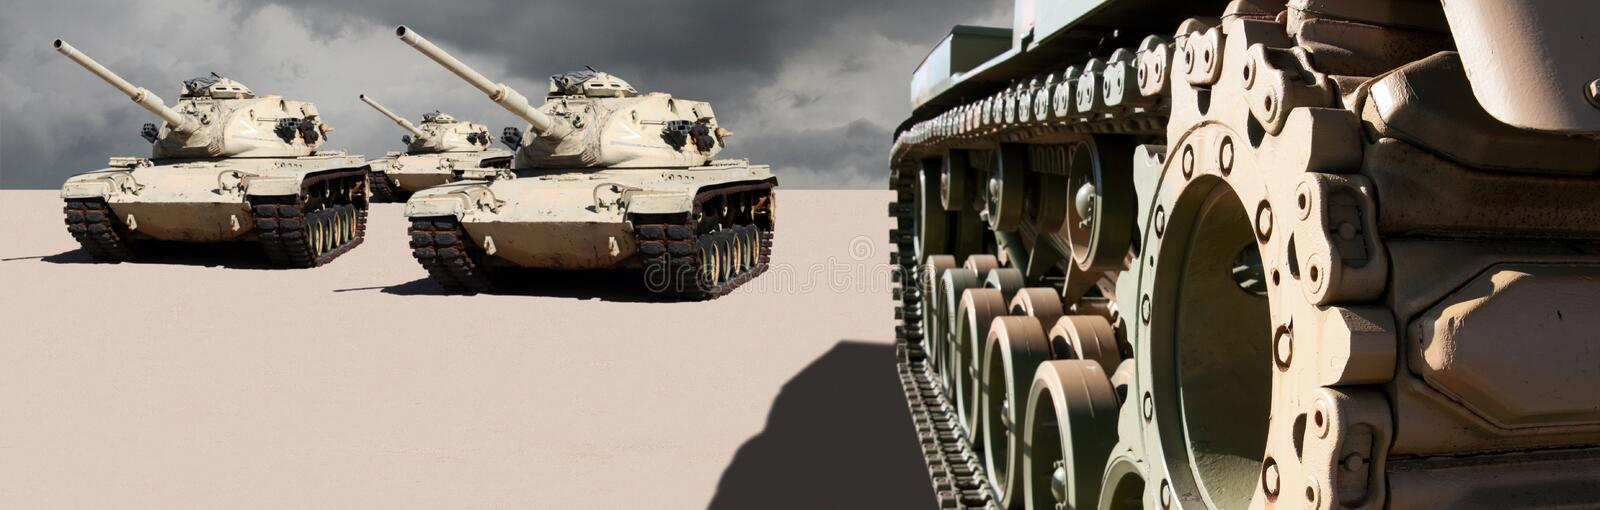 United States Army War Tanks in the Desert stock photo